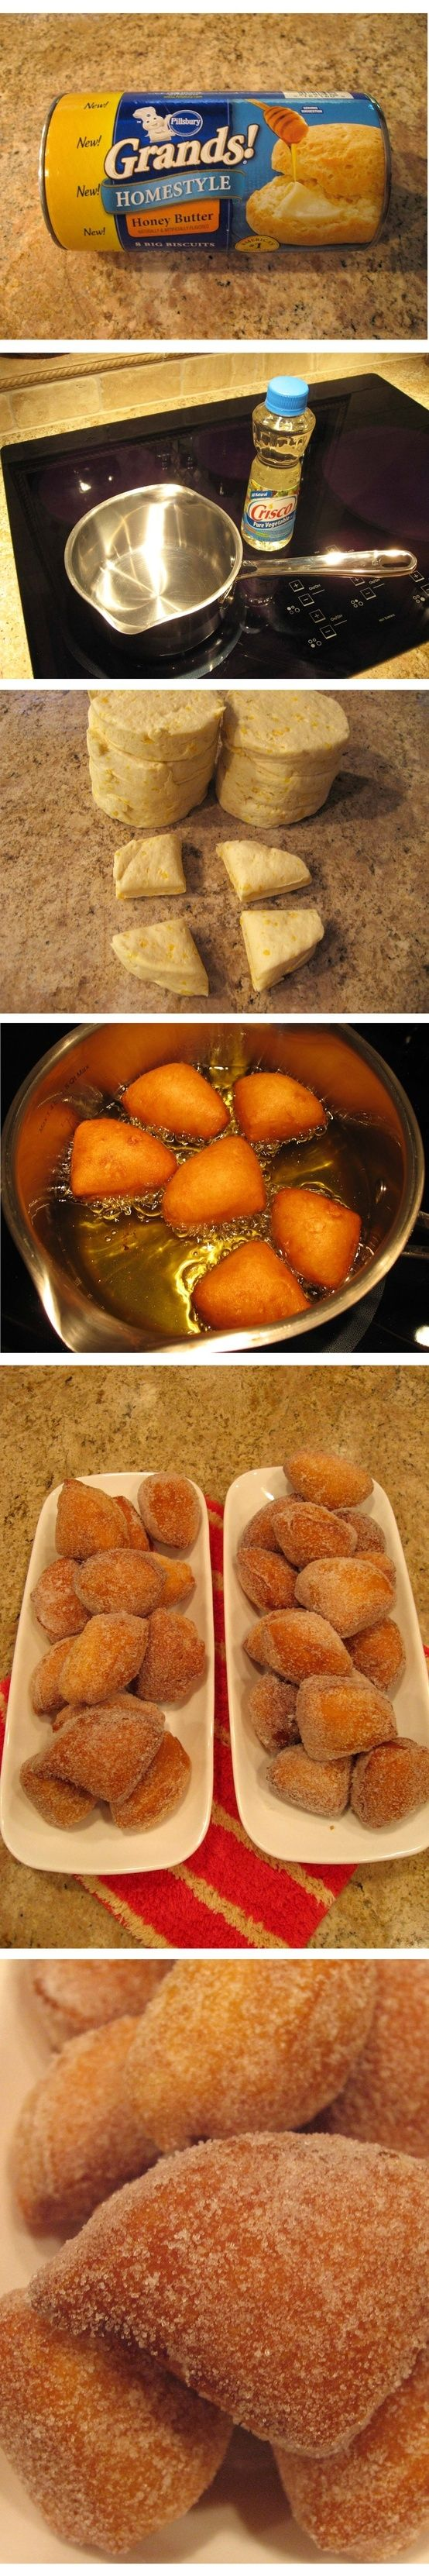 Easy Biscuit Doughnuts - Cut biscuits into quarters, drop in 200 - 240° oil for a couple of minutes (flip halfway), cool sightly on paper